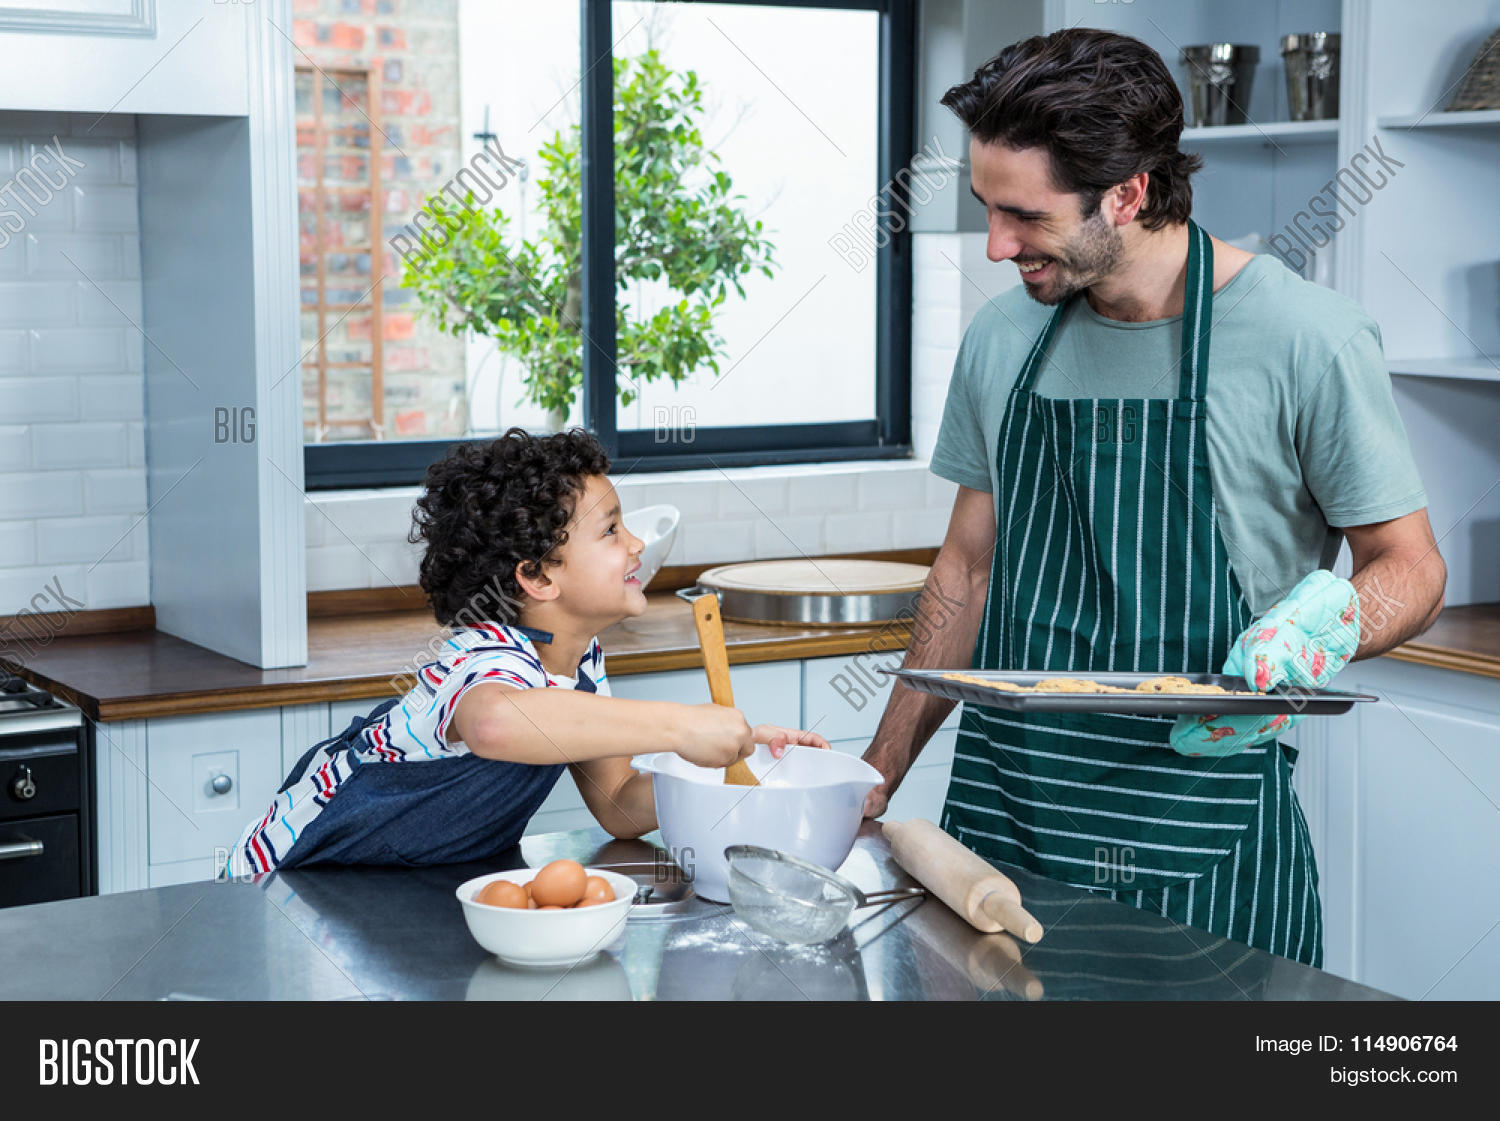 Smiling Father Son Image & Photo (Free Trial) | Bigstock